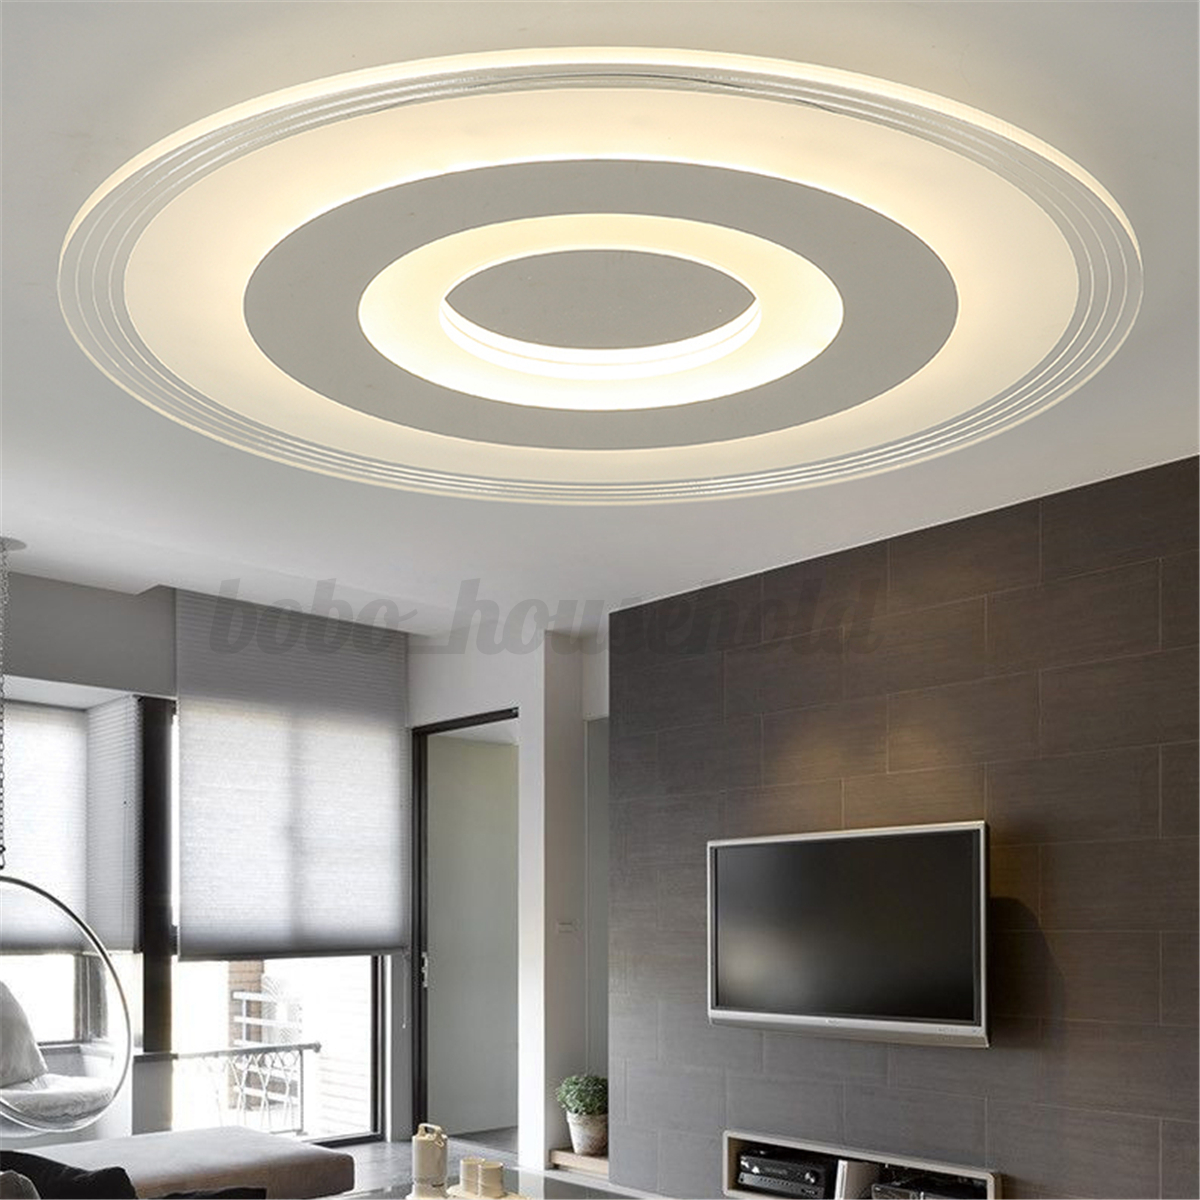 Large Round 15-19 Inch Ceiling Light Mounted Fixture Home